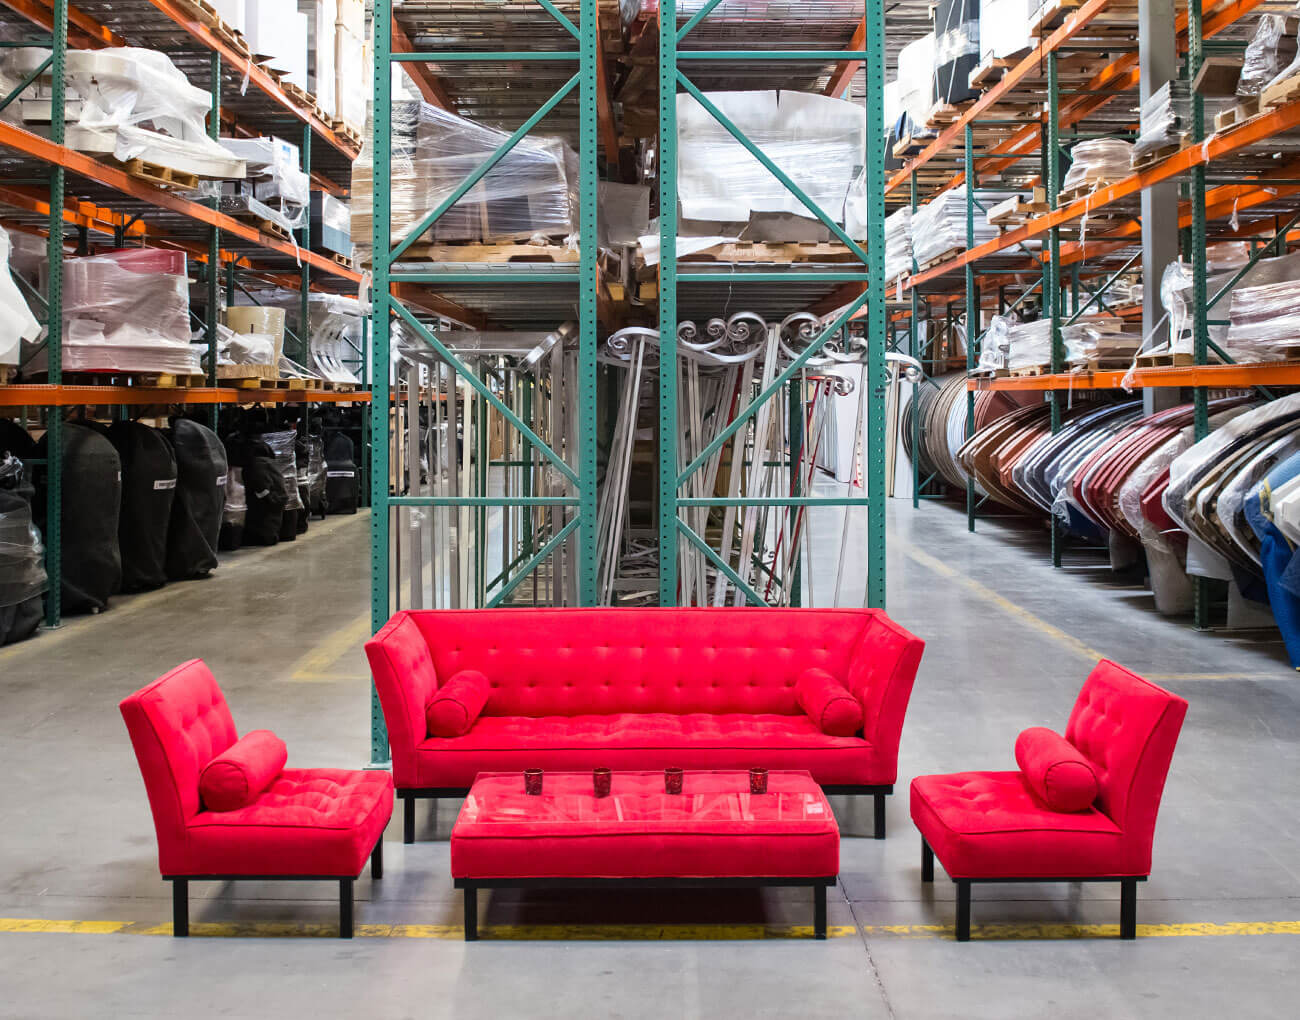 Plush red sofa and chairs arranged into a seating area in a warehouse.